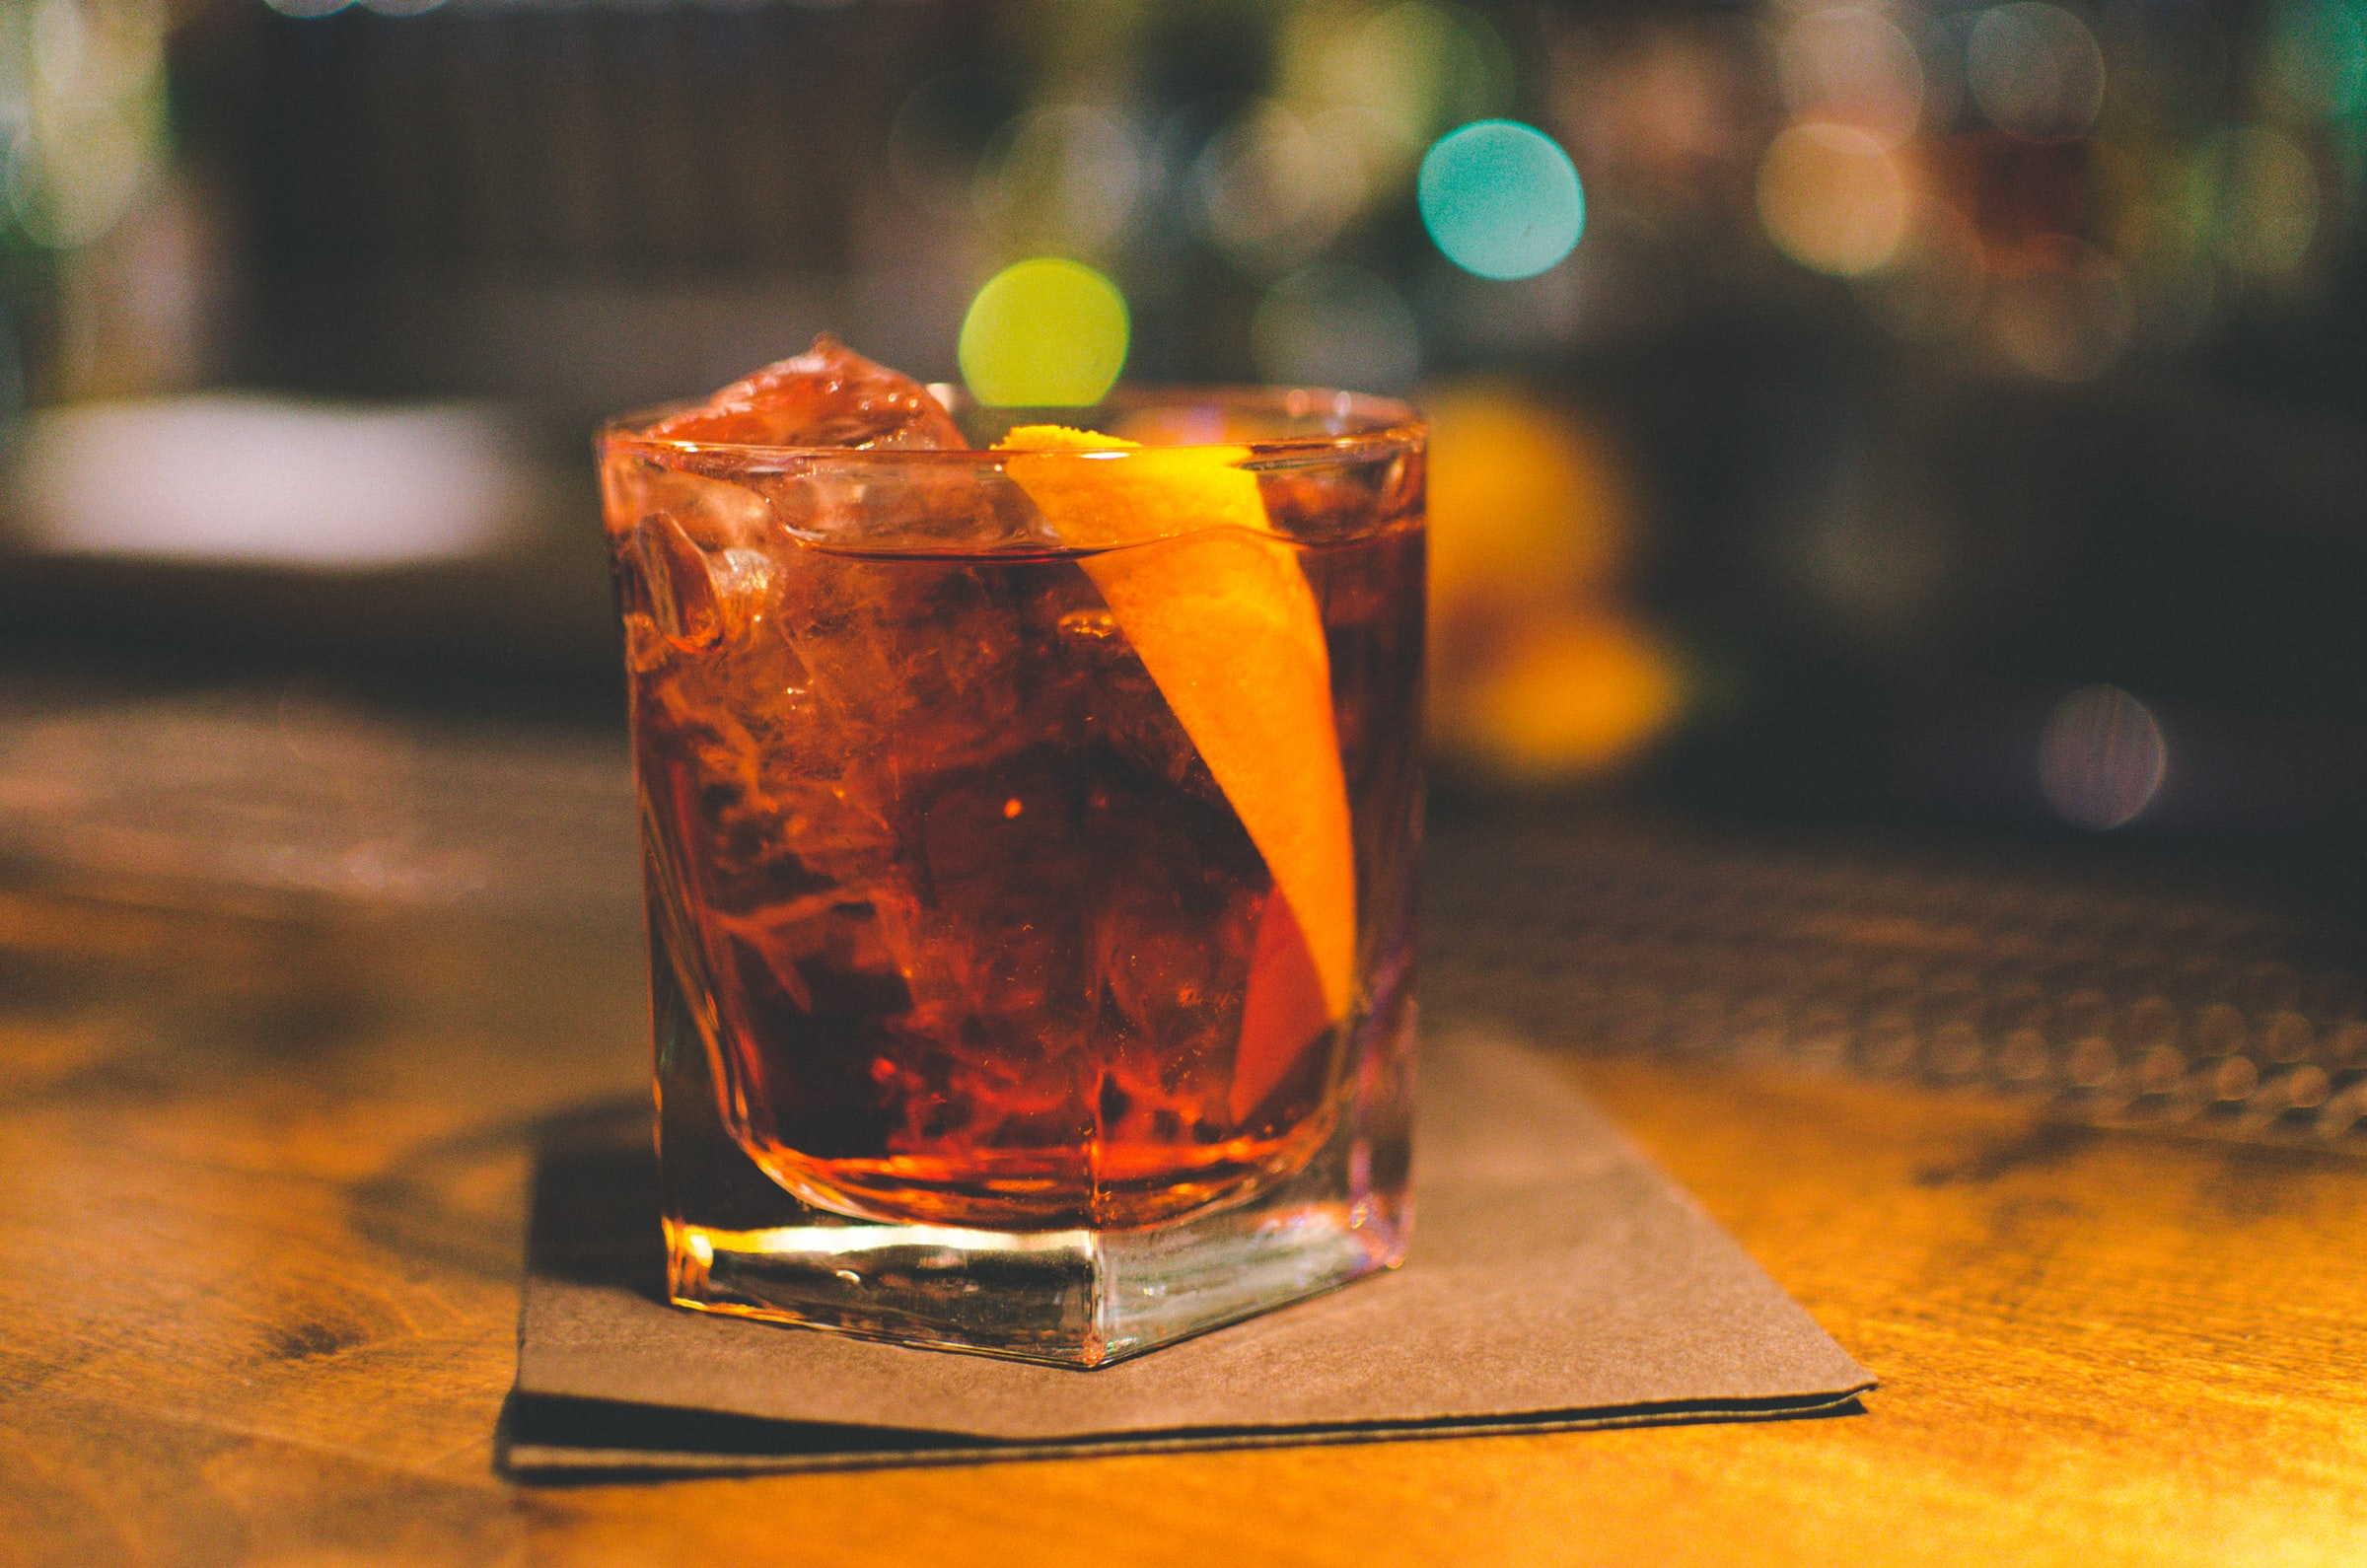 Celebrate Negroni Week with This Classic Negroni Cocktail Recipe